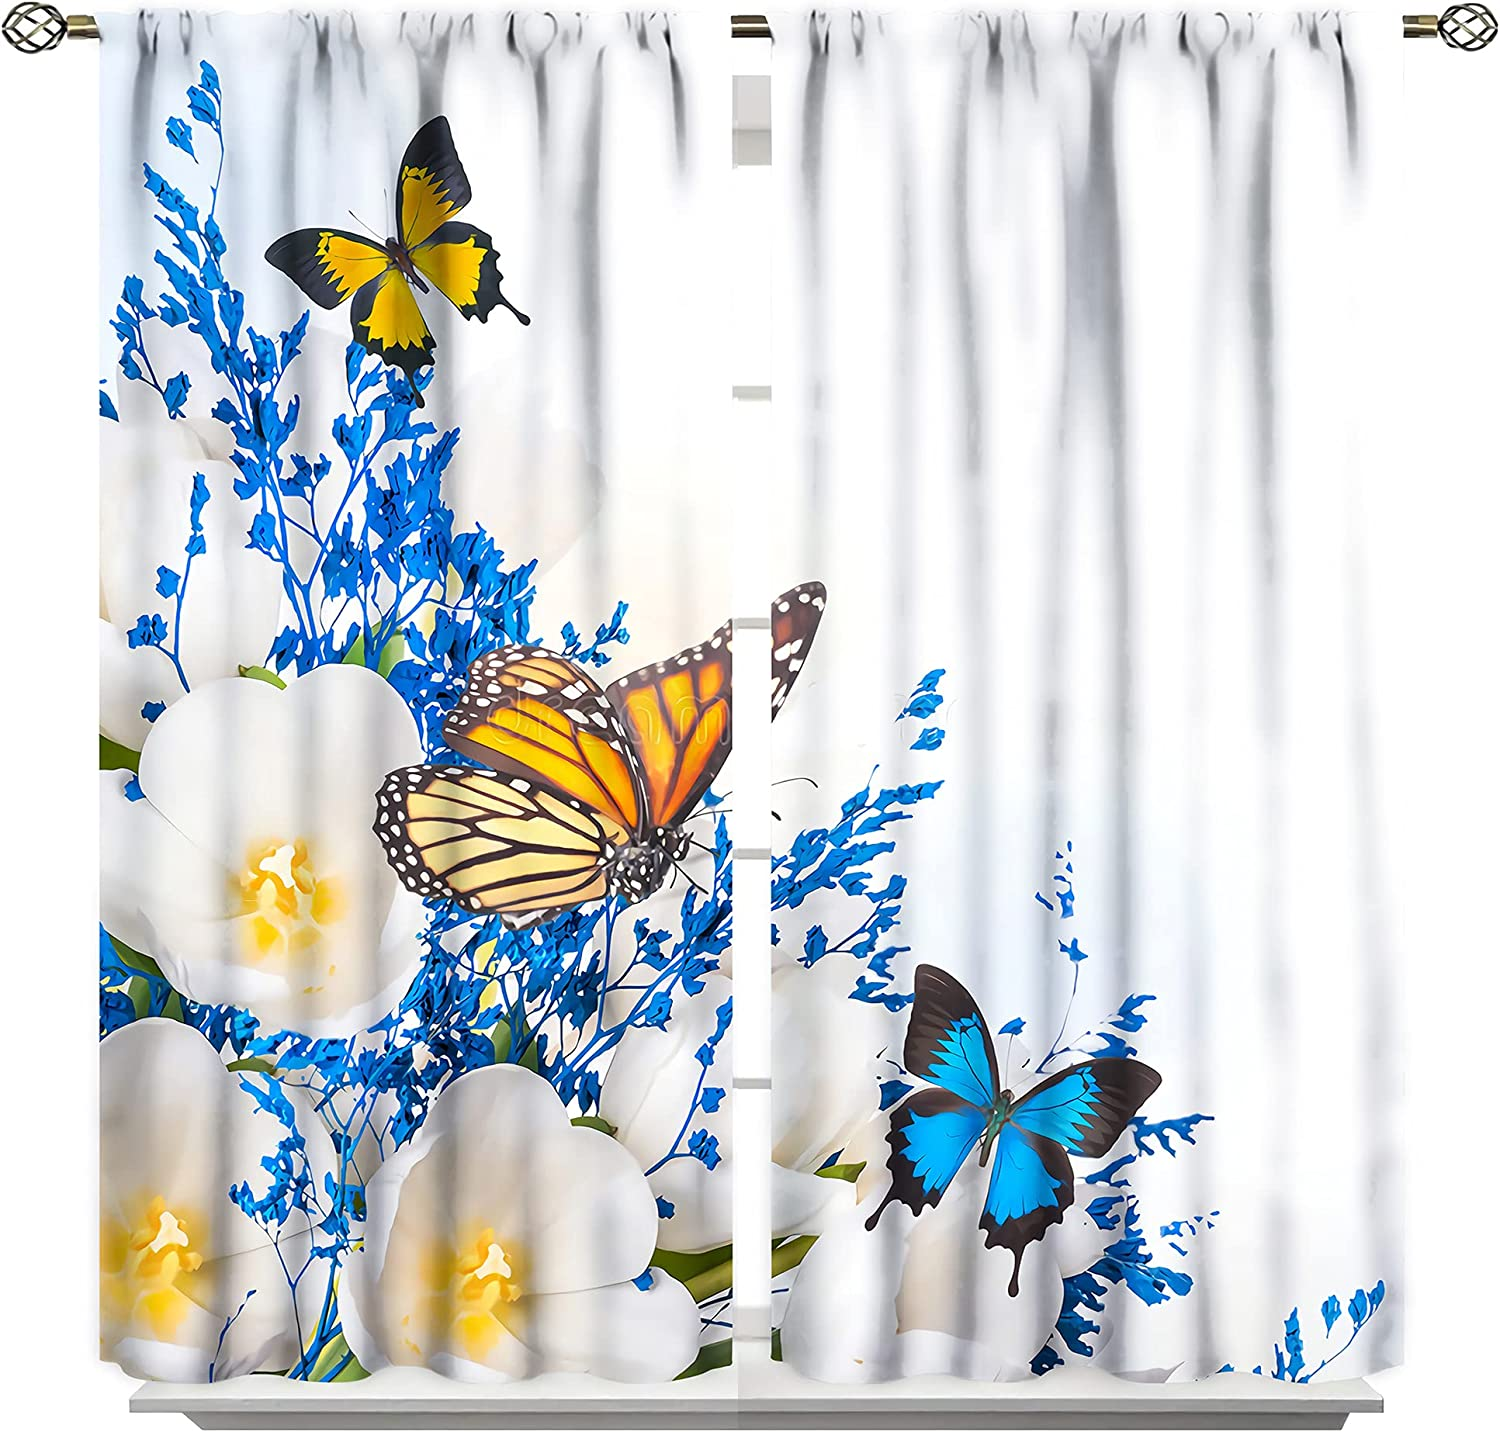 Butterfly Floral Popular overseas Curtains White Grass Flor Tulips Blue Limited price sale